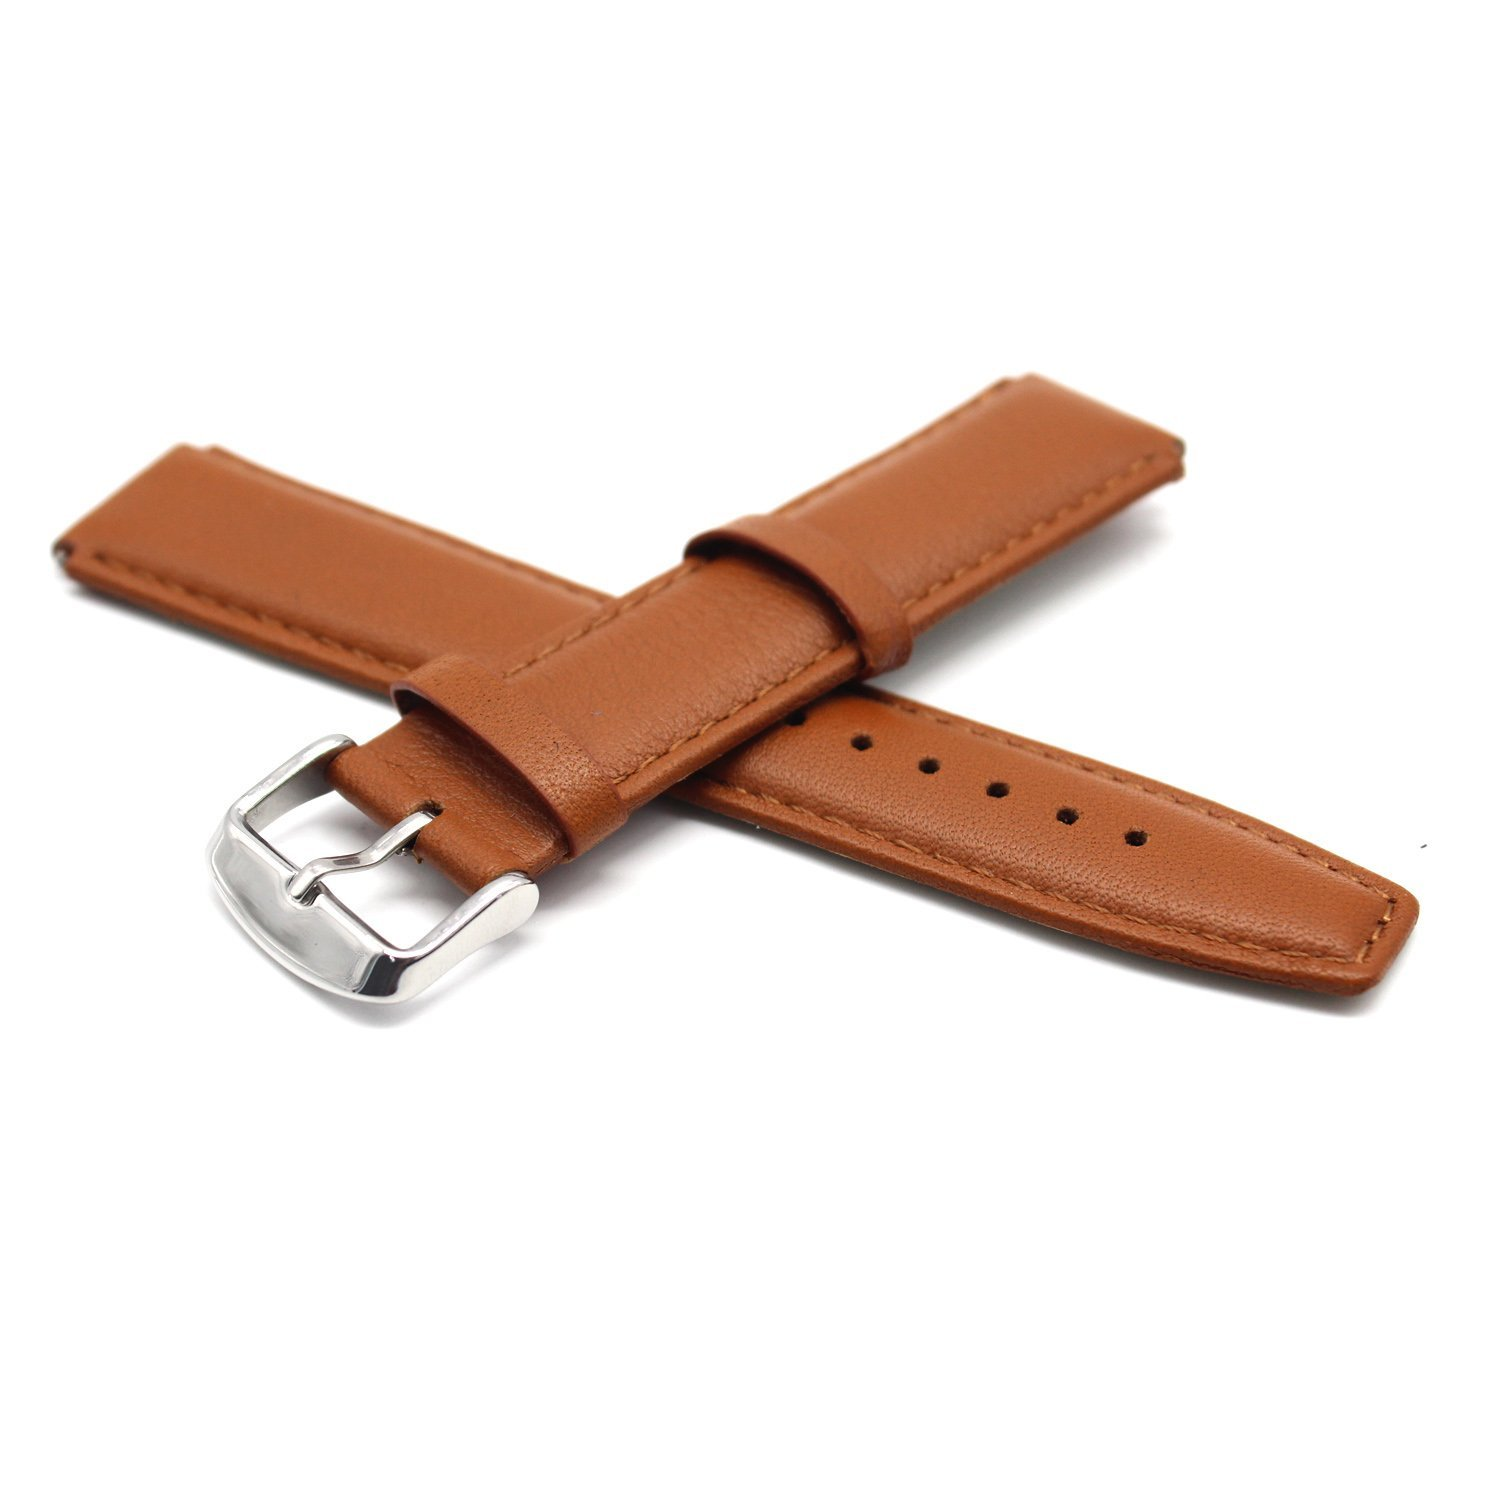 Huawei Fit Smart Fitness Watch Genuine Leather Band - MOTONG Replacement Band For Huawei Fit Smart Fitness Watch,Come With Quick Release (leather light brown)